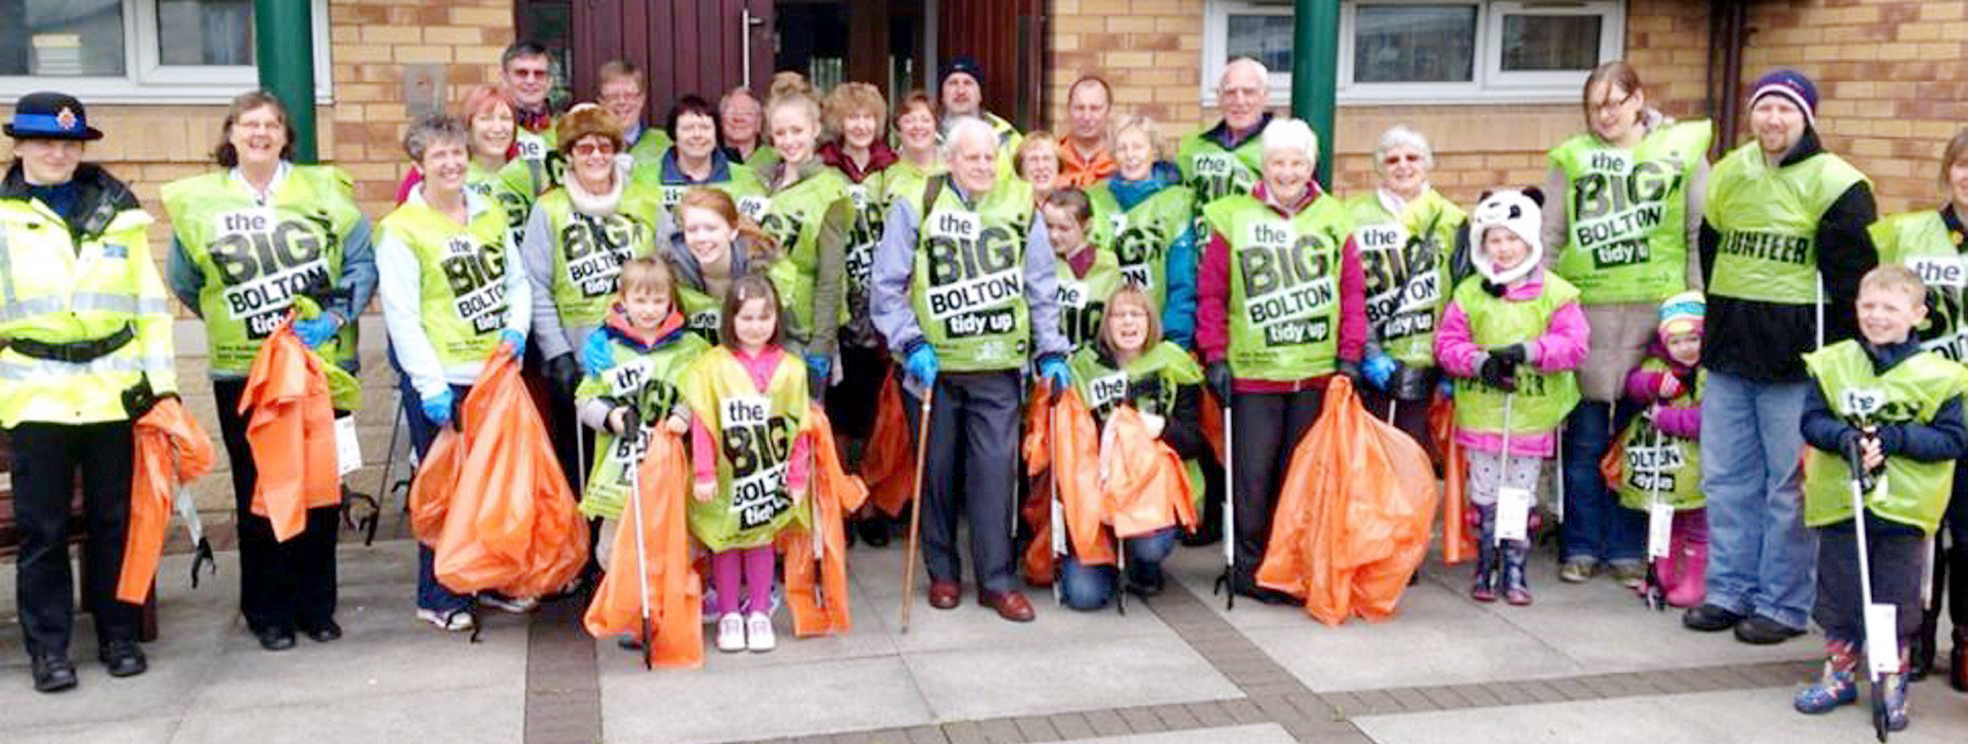 Little Lever worshippers do litter pick instead of walk of witness